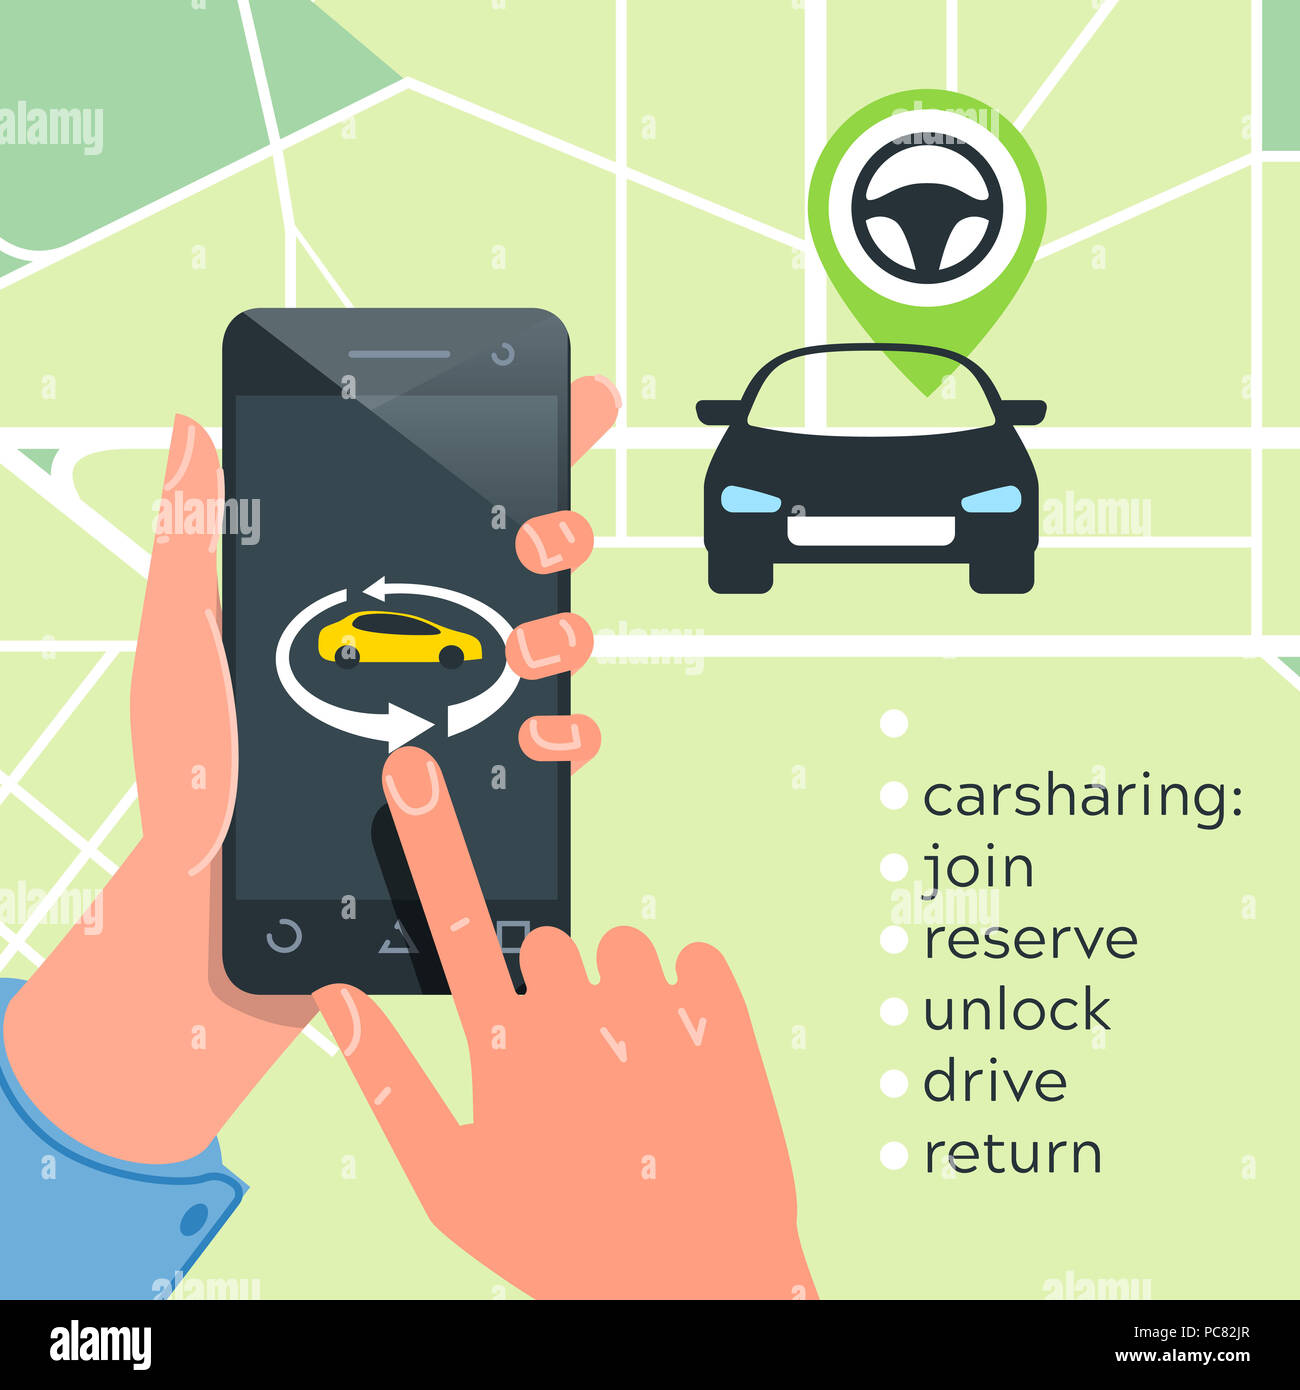 Car Sharing Service Concept Carsharing Renting Car Mobile App